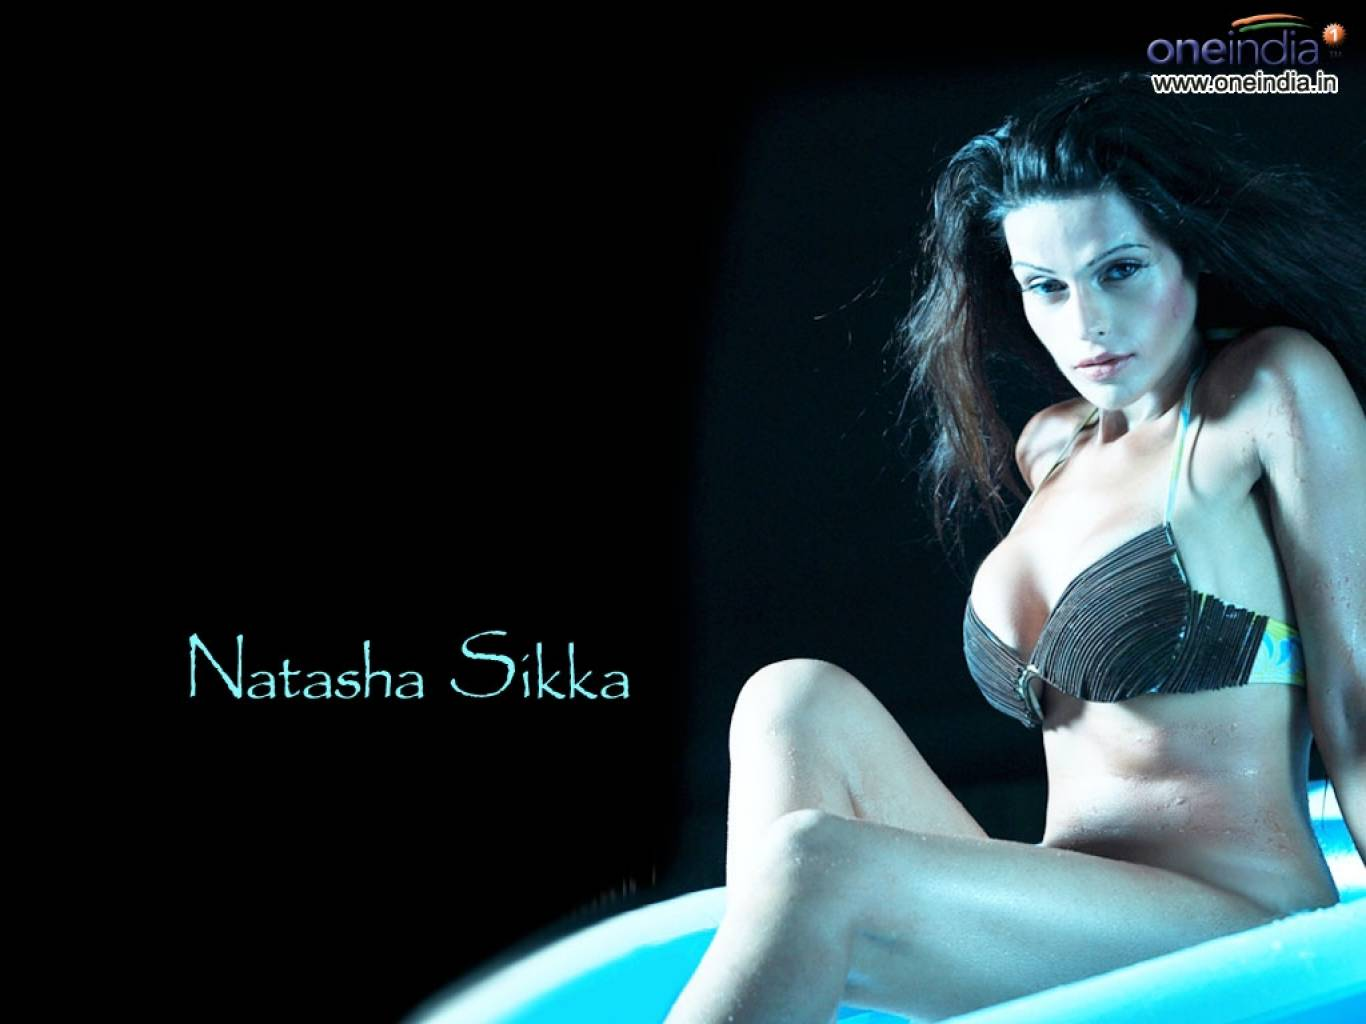 Natasha Sikka Wallpapers